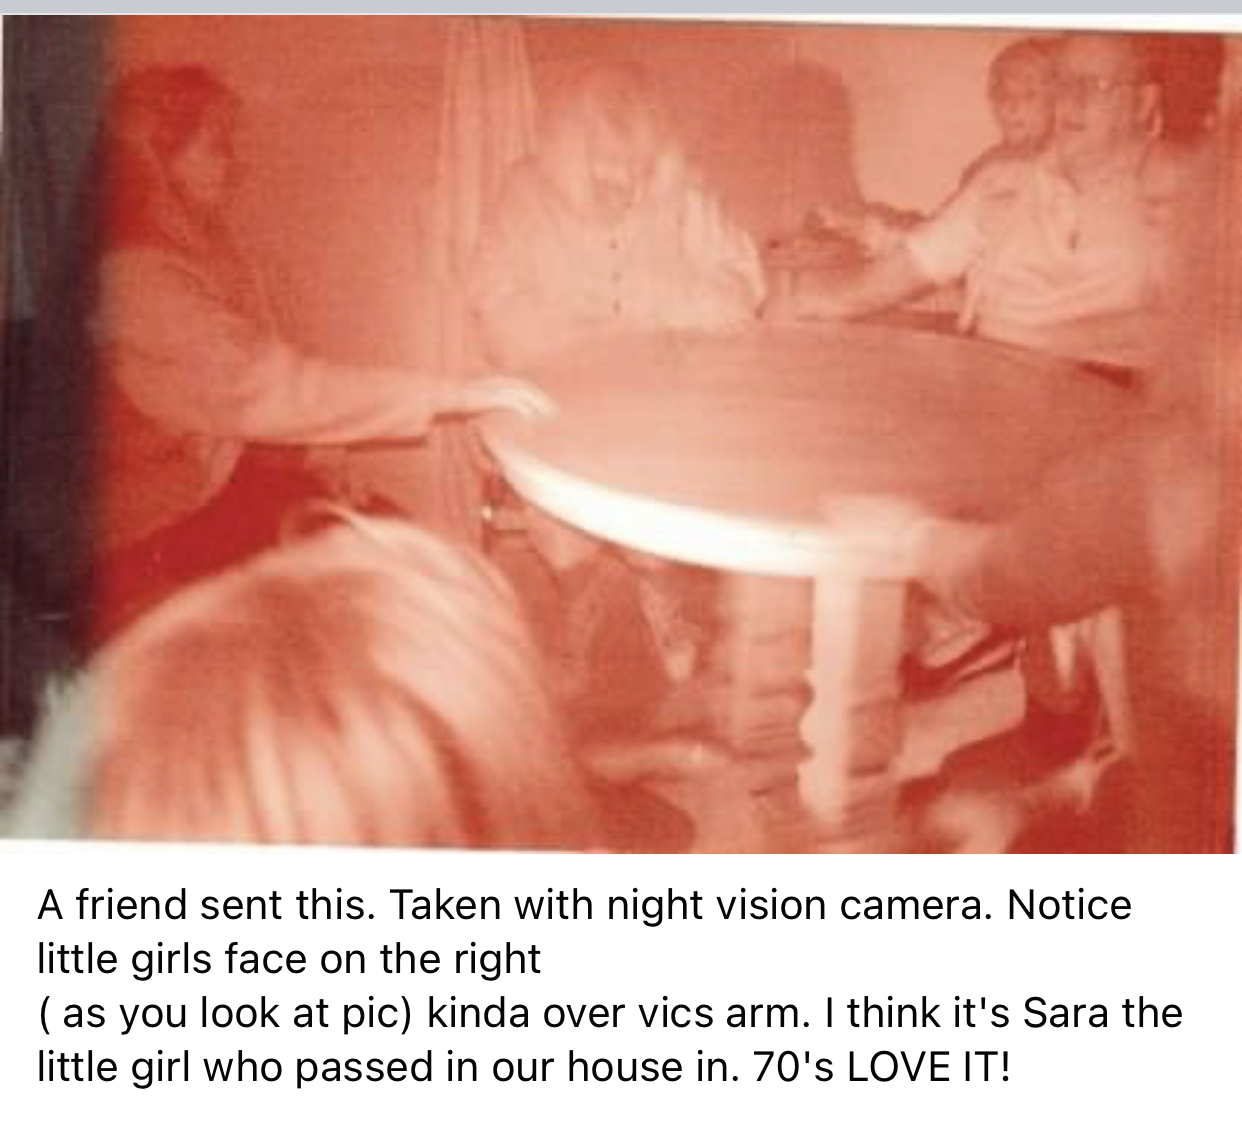 We were sure this was a picture of our little girl Sarah who passed at the Cassadaga cottage in the '70s. Several of the mediums knew the family. Sarah's grandma,  mom and Sarah lived there for many, many years.  She came to visit us often ♥️